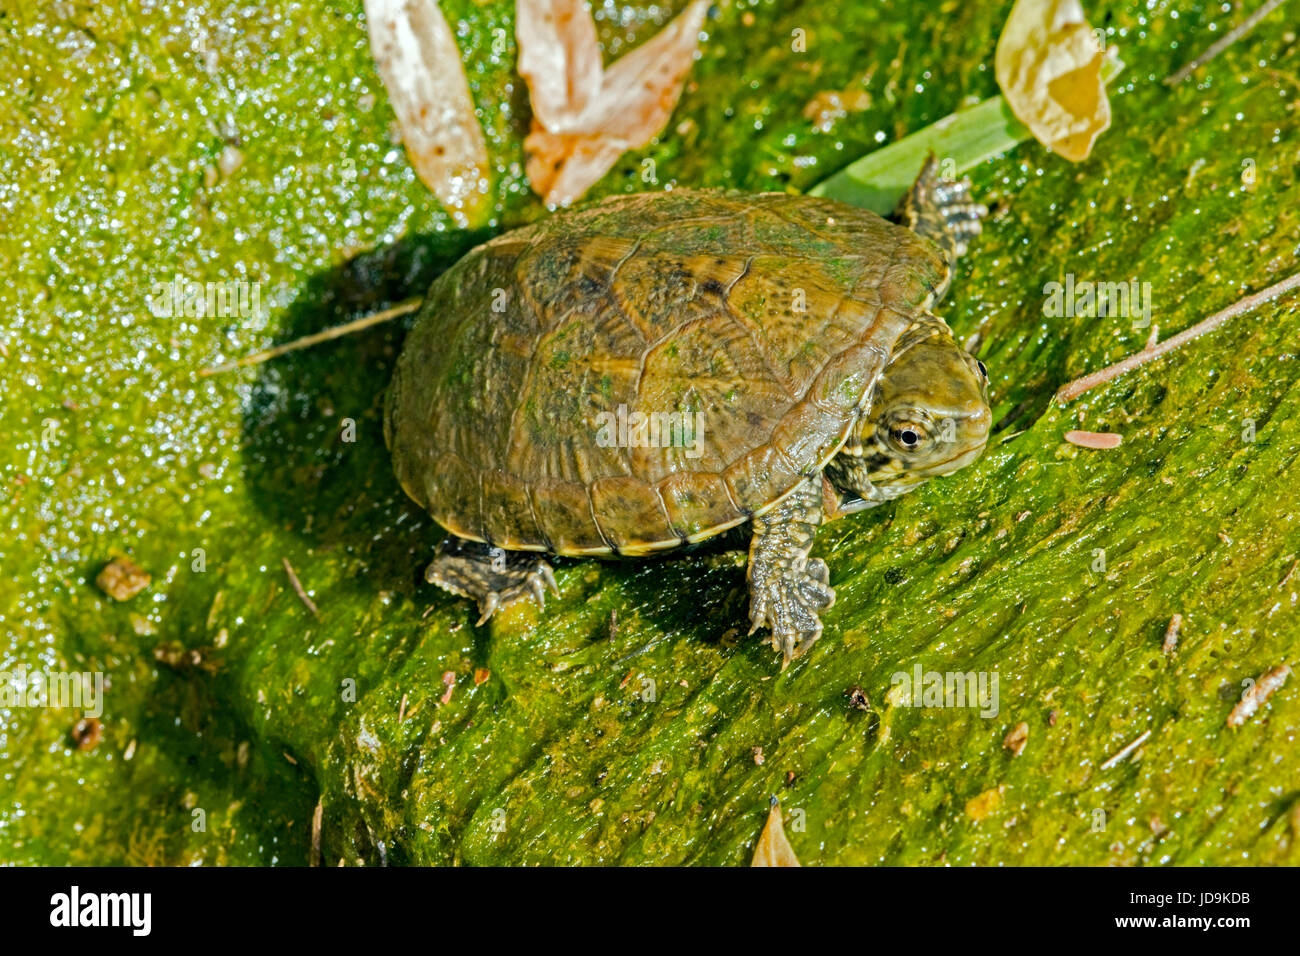 Sonora Mud Turtle  Kinosternon sonoriense  California Gulch, Santa Cruz County, Arizona, United States 6 September - Stock Image